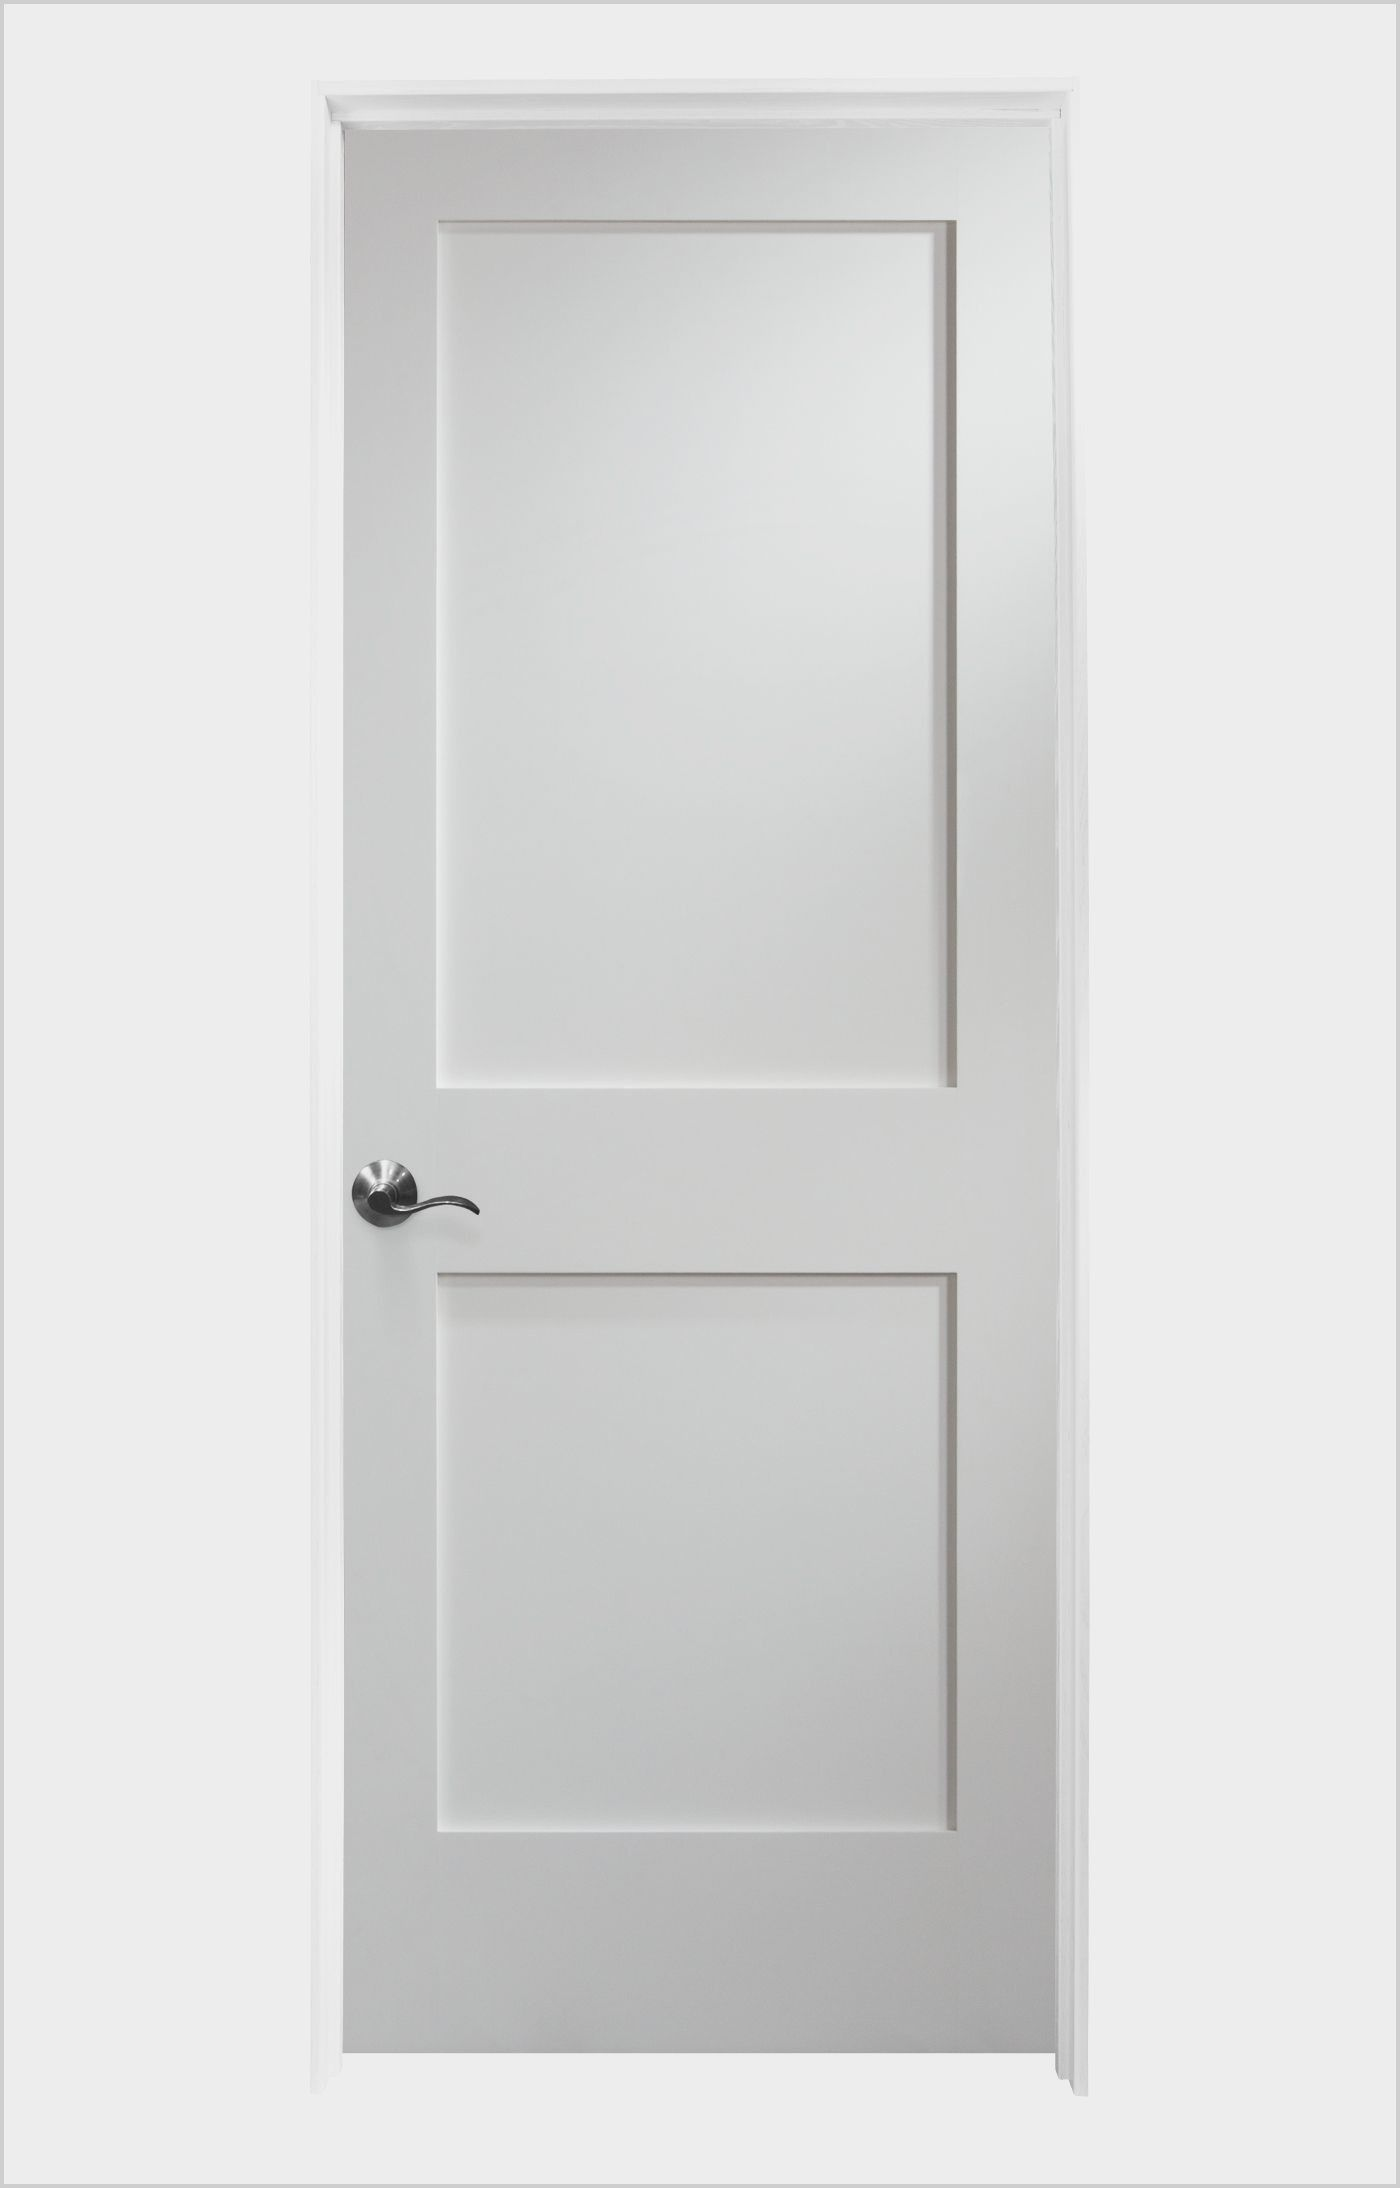 Home Depot White Bedroom Doors Di 2020